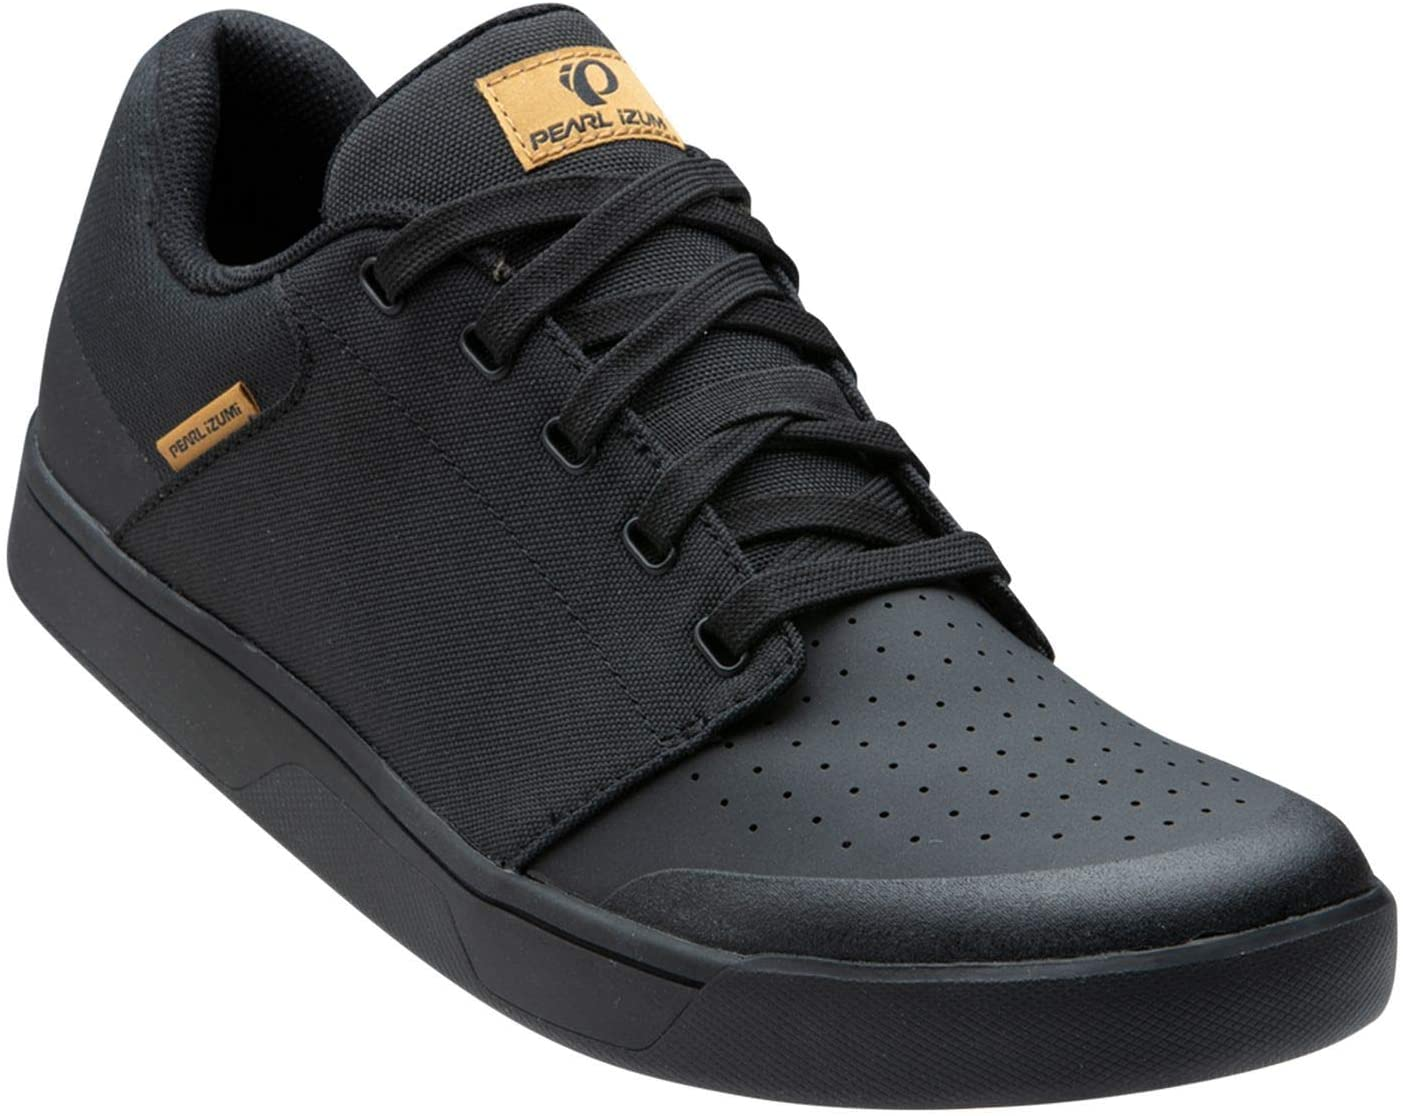 Commuter Cycling Shoes .DOCX